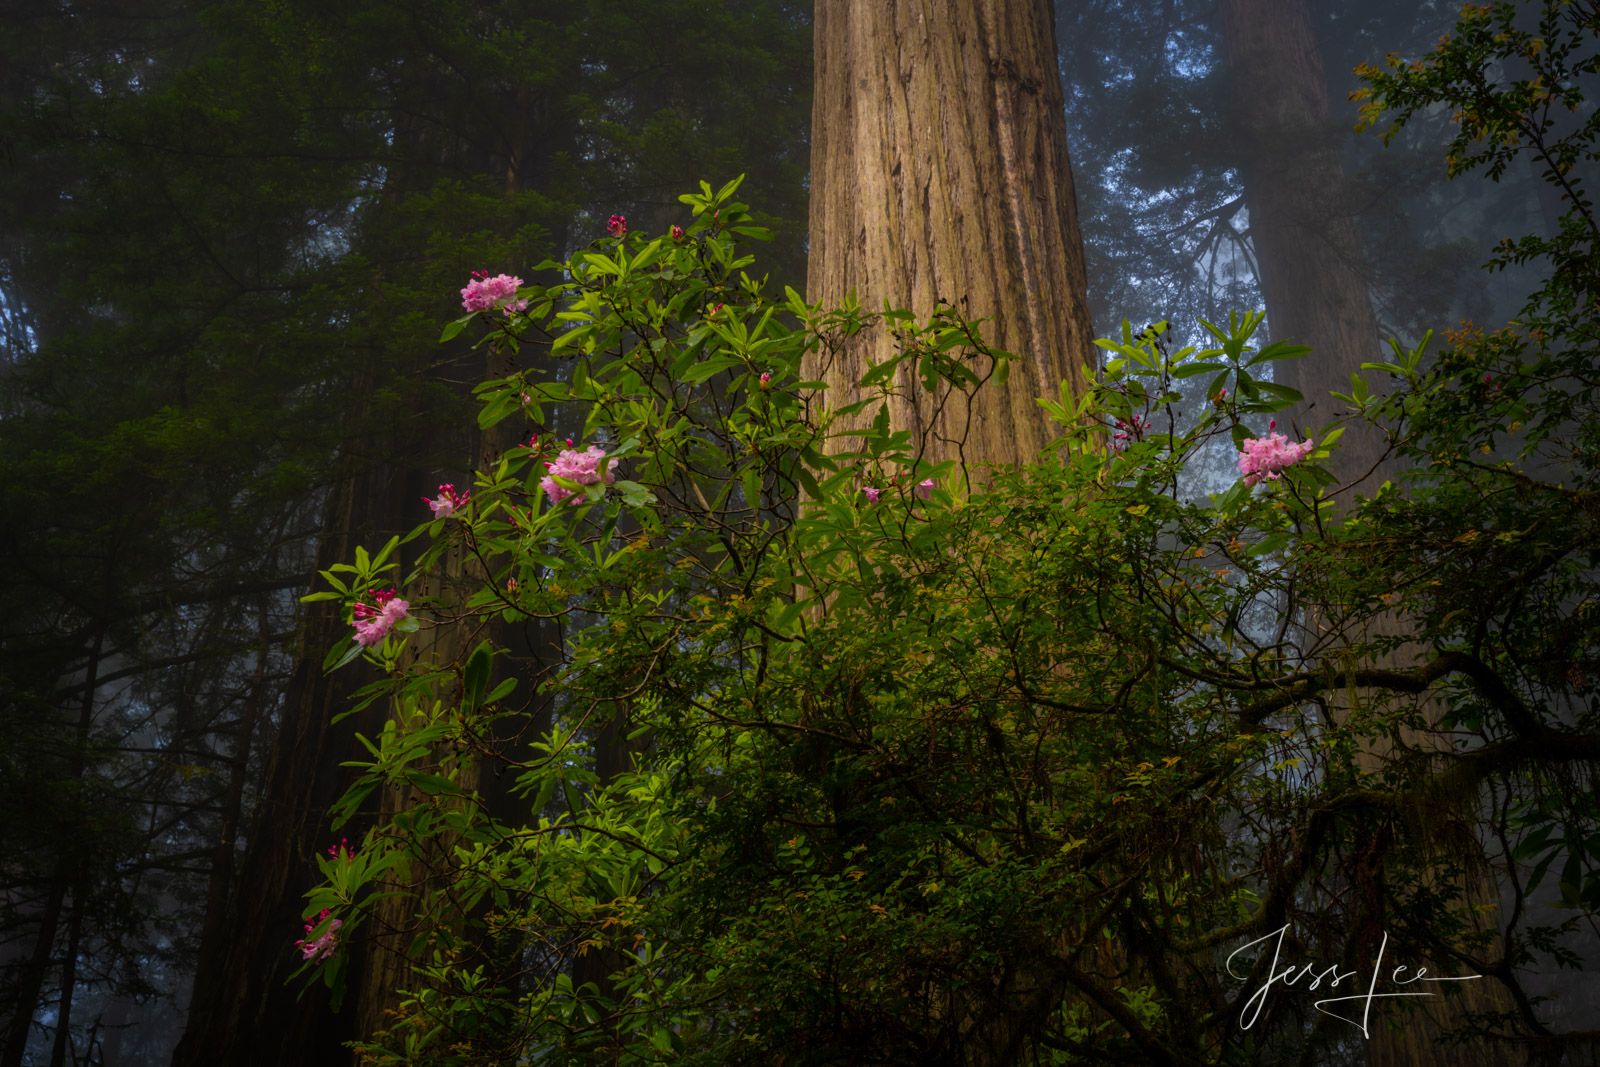 Beautiful Rhododendrons and redwoods in the Redwood Forest.